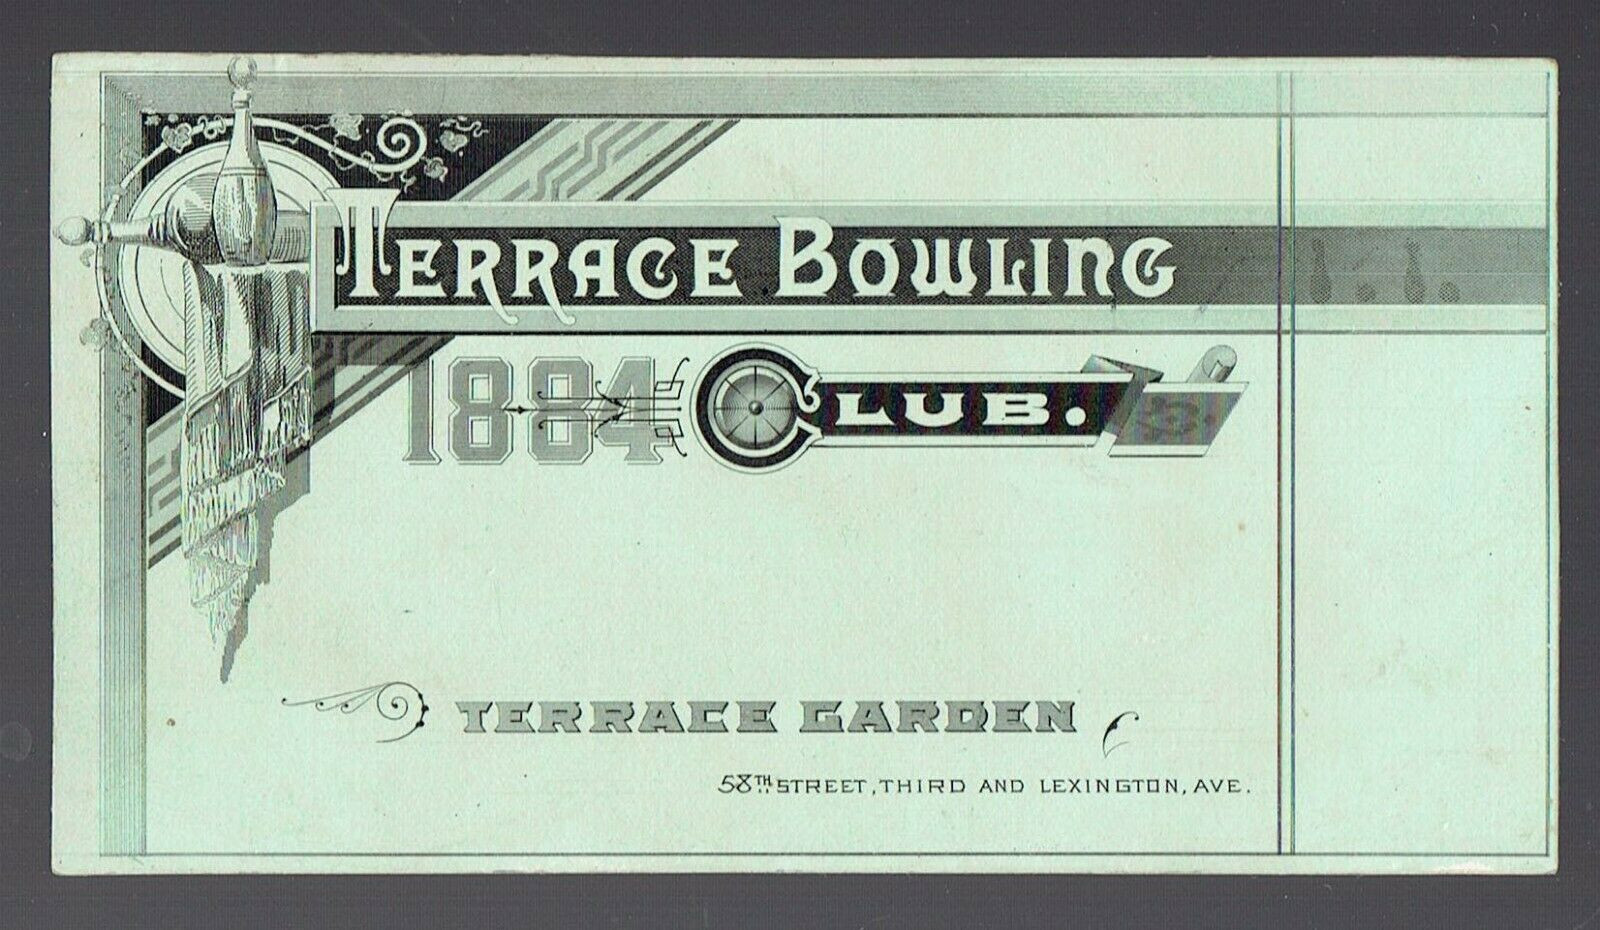 Terrace Bowling Club card.jpg